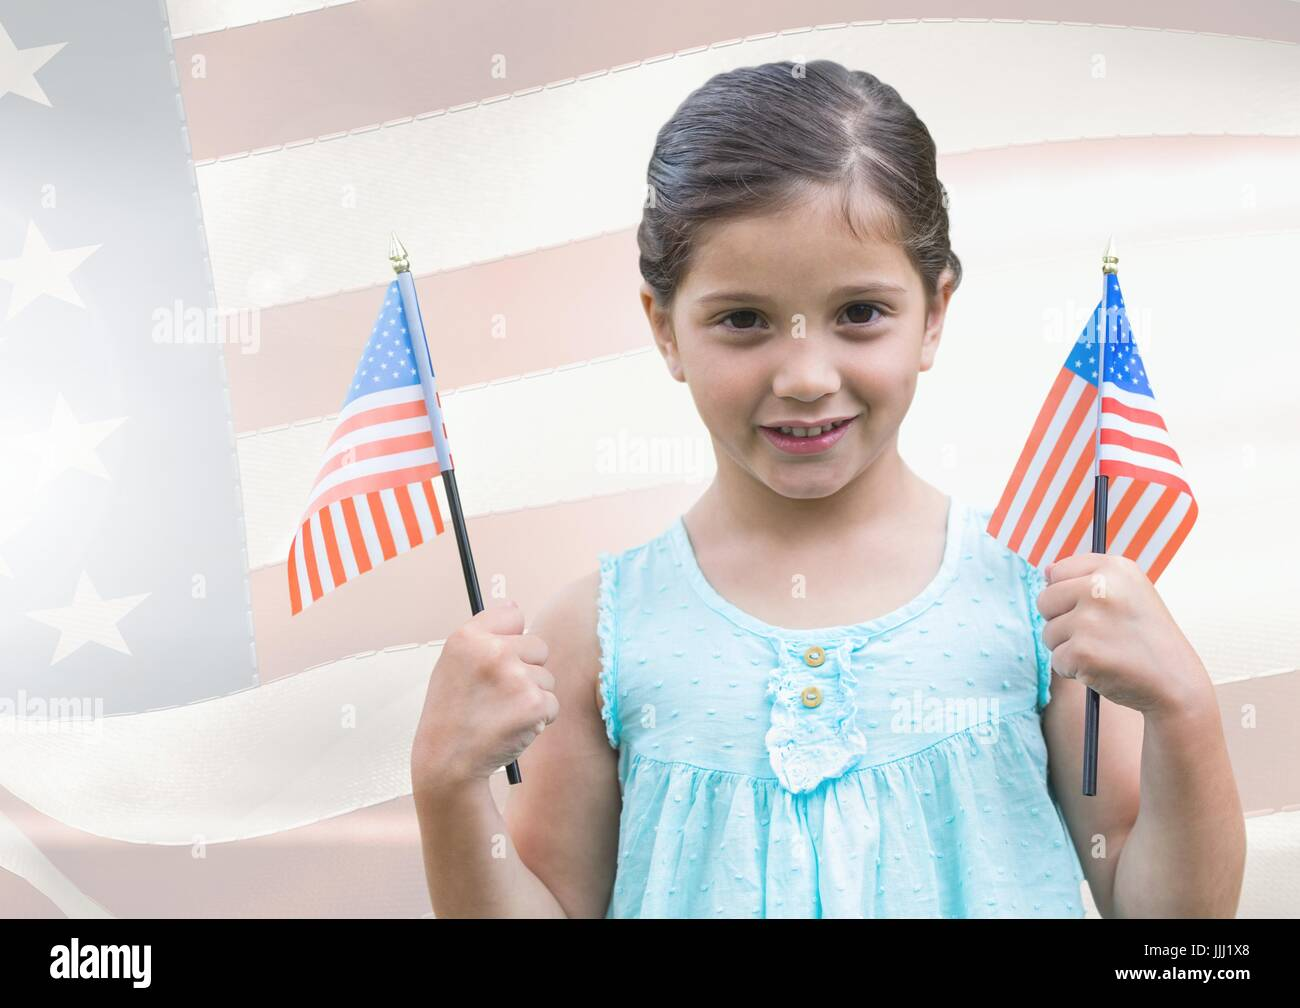 ILittle girl holding Americans flags against american flag - Stock Image